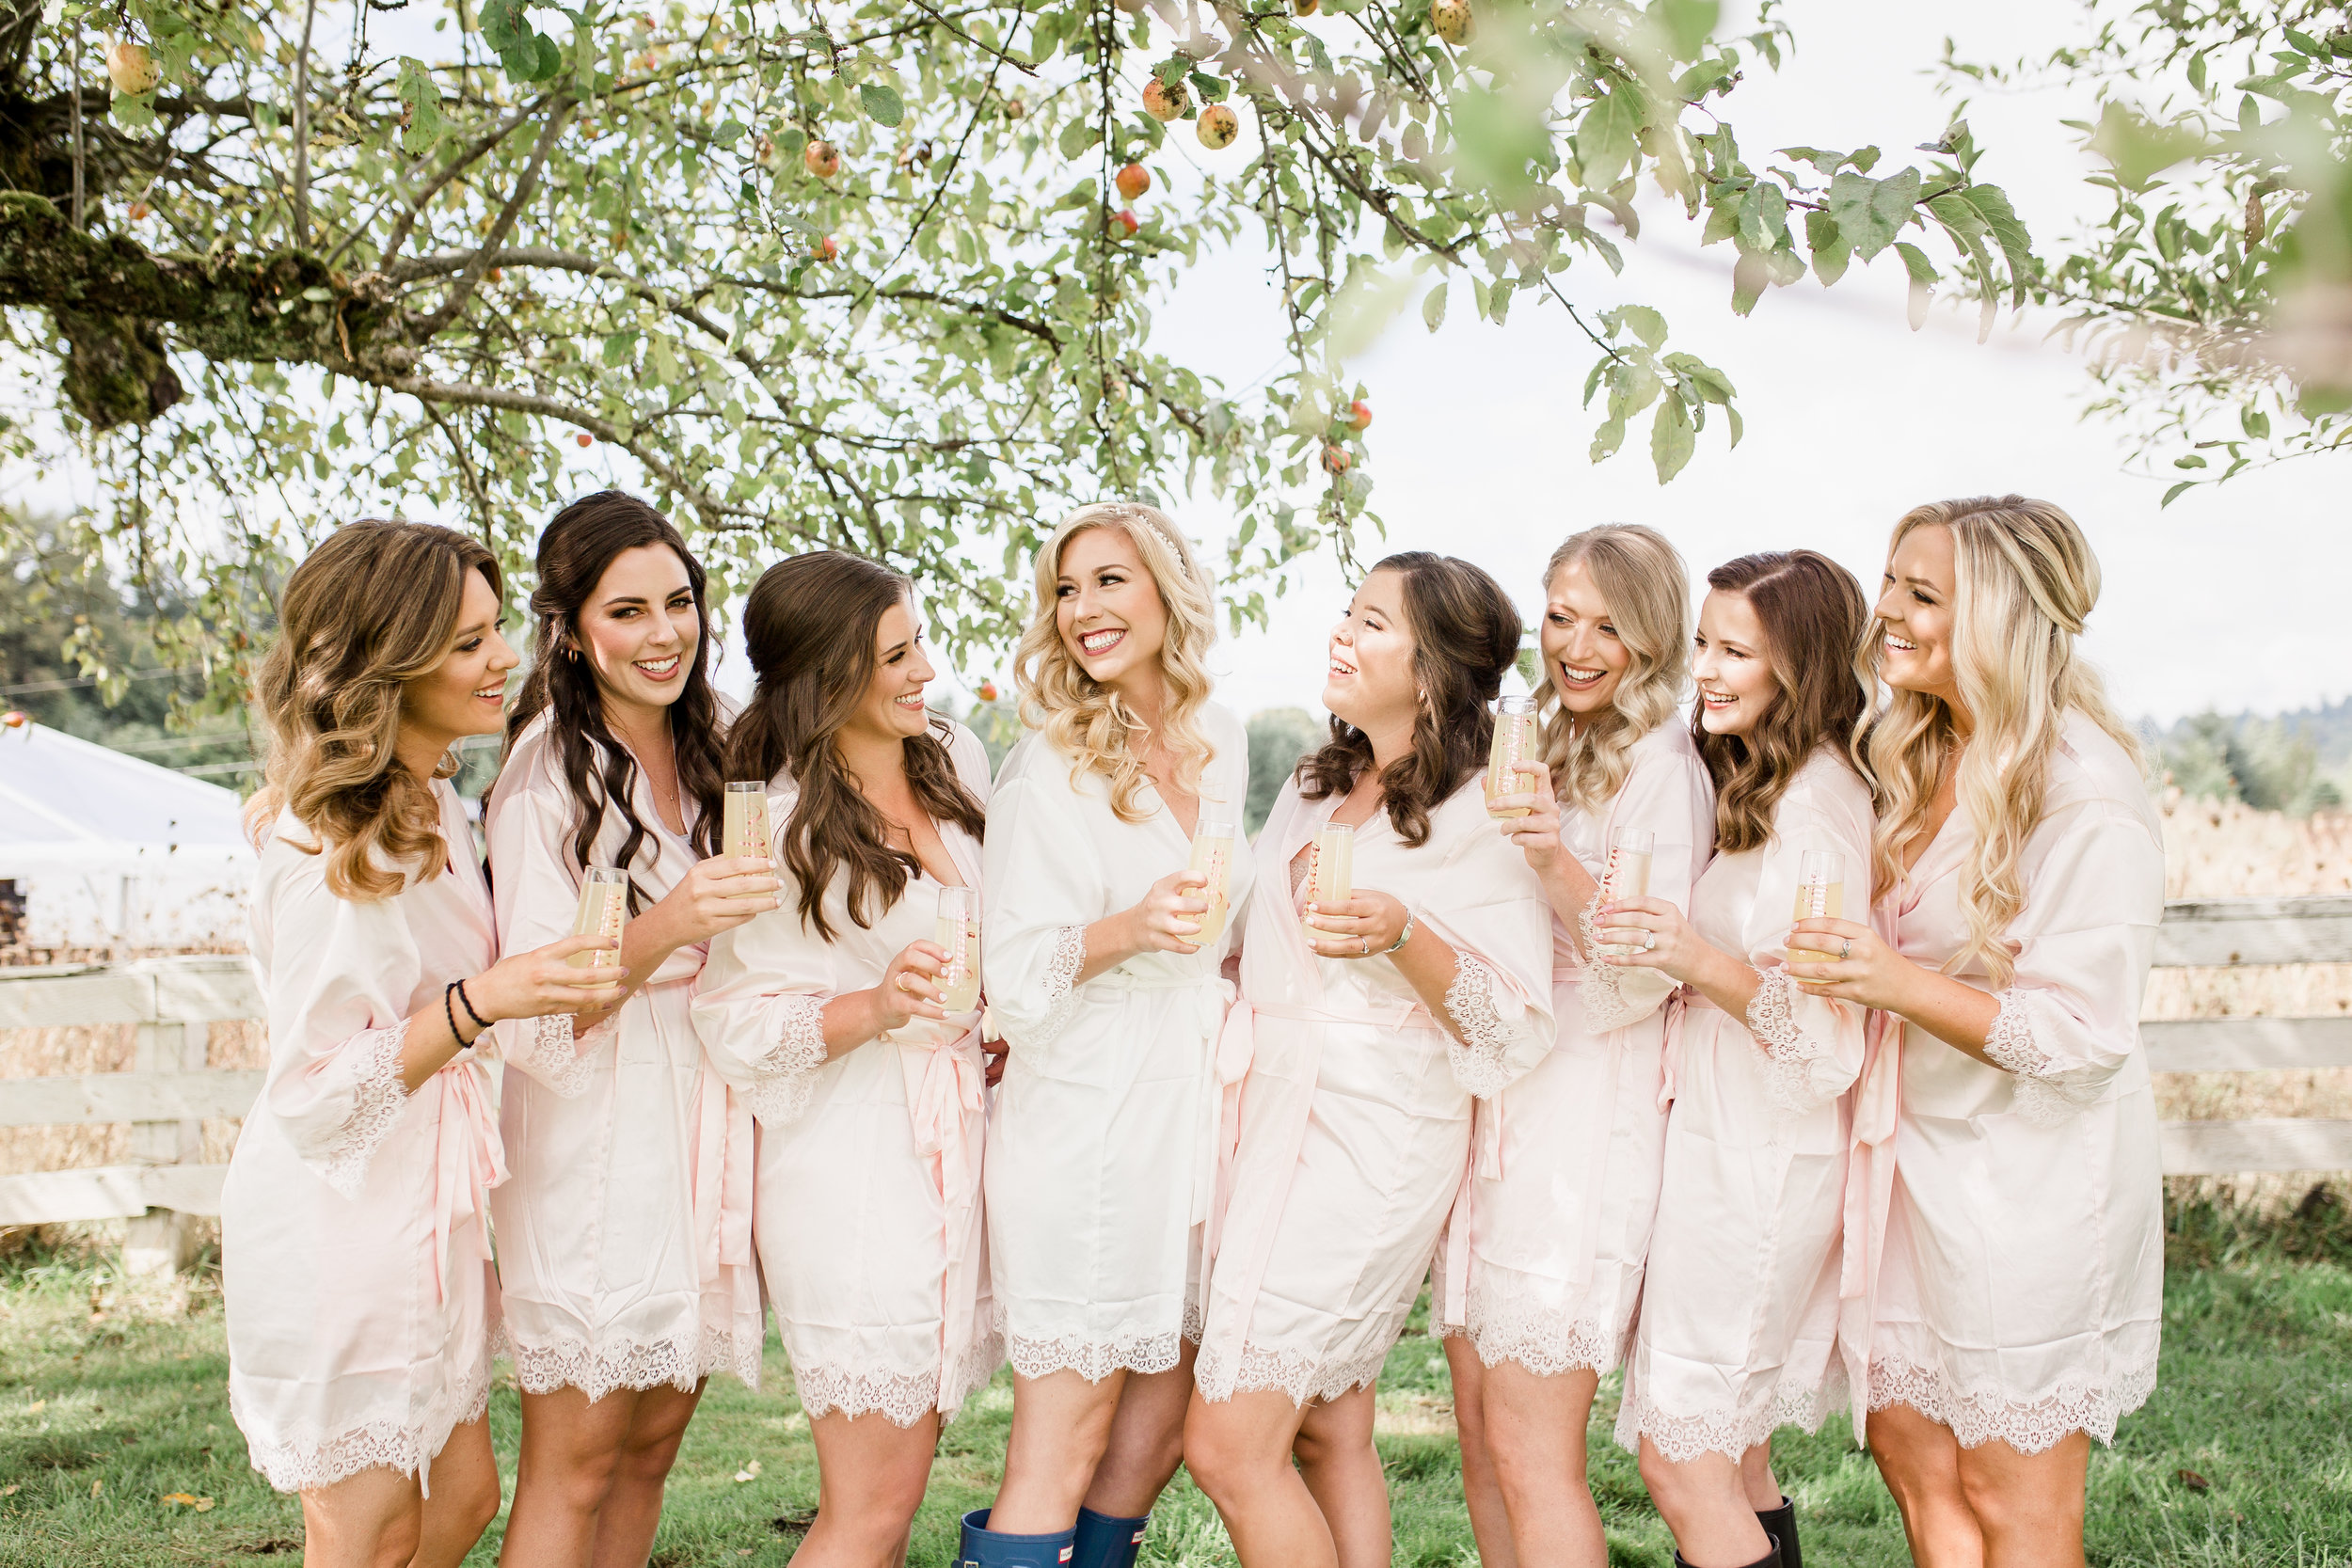 Bridalbliss.com | Portland Wedding | Oregon Event Planning and Design | Kara Santa Ana Photography